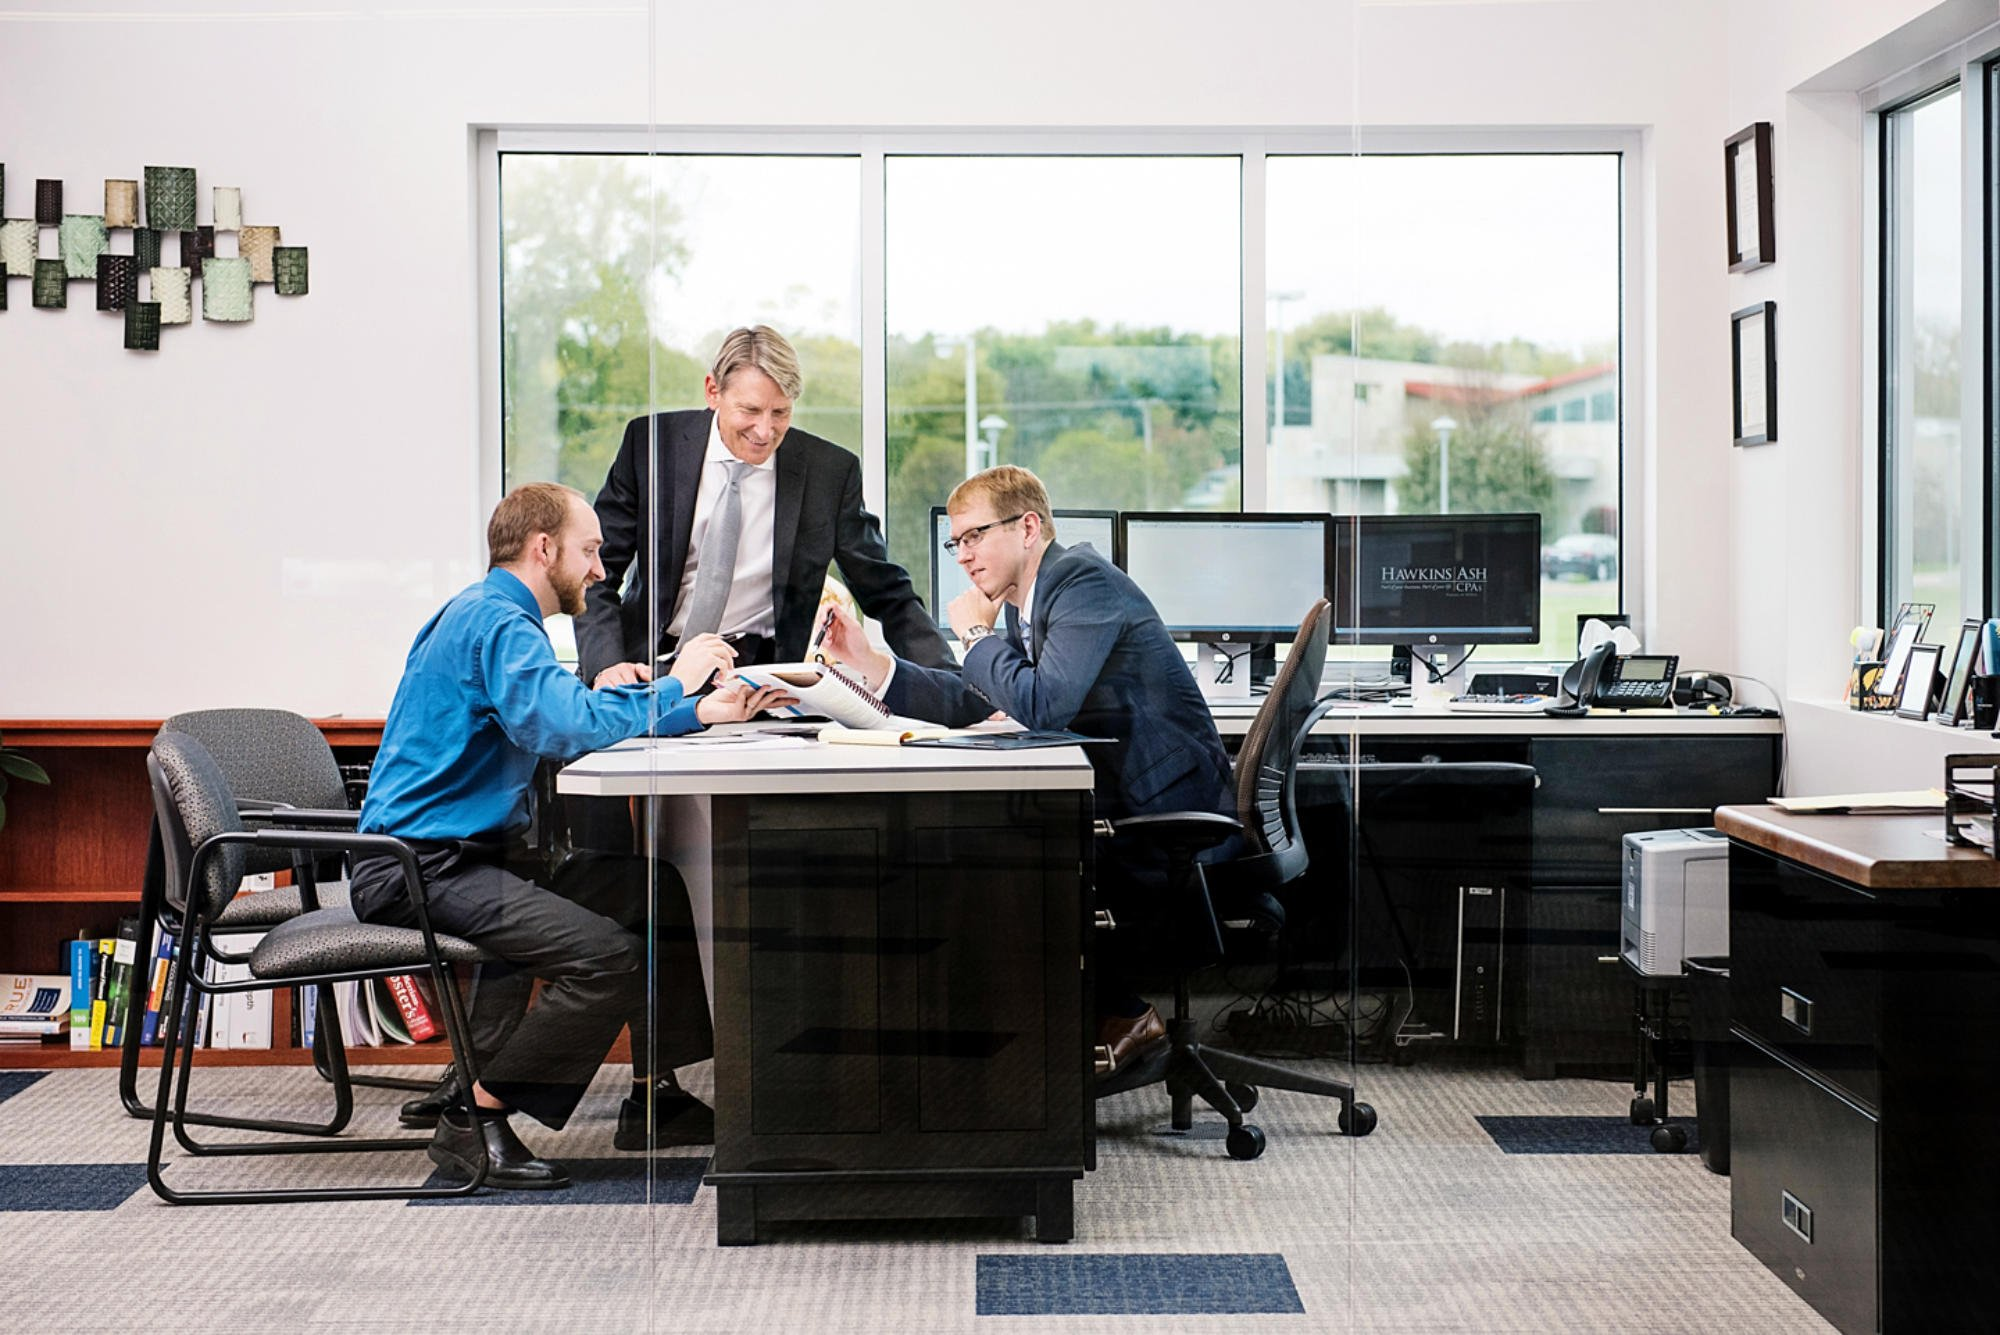 Corporate photography of accountants looking over paperwork.